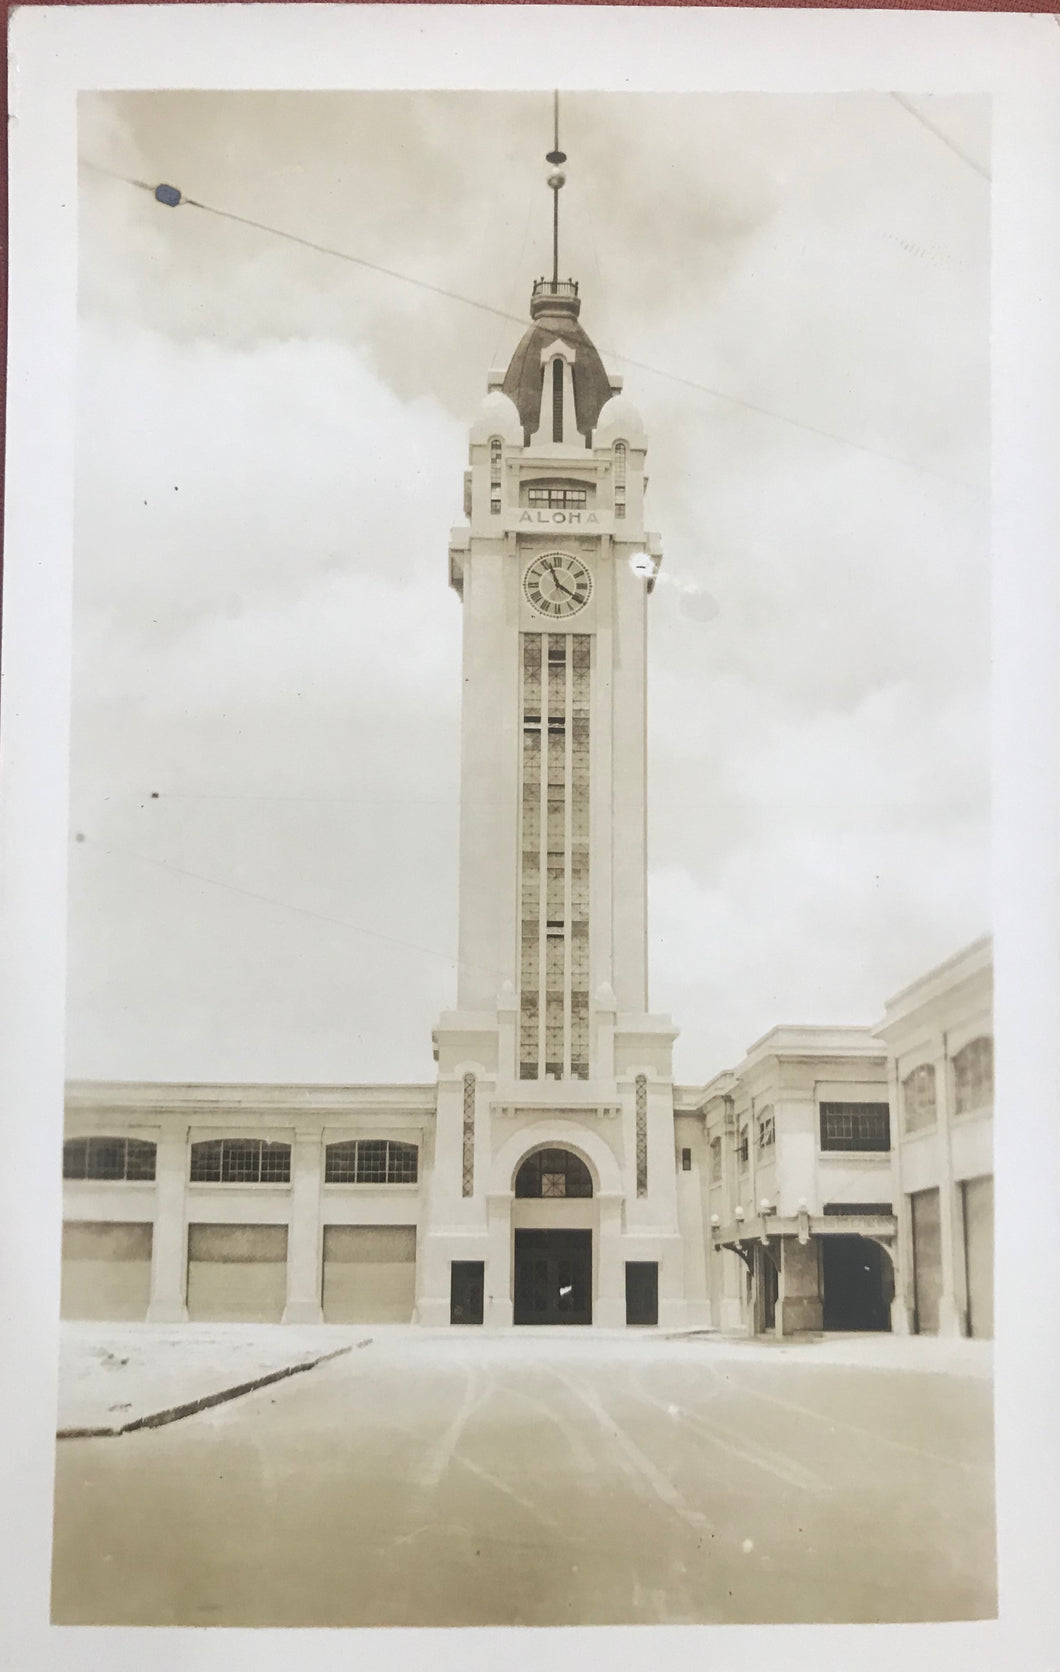 Vintage Real Photo Post Card Of Aloha Tower Honolulu, Hawaii